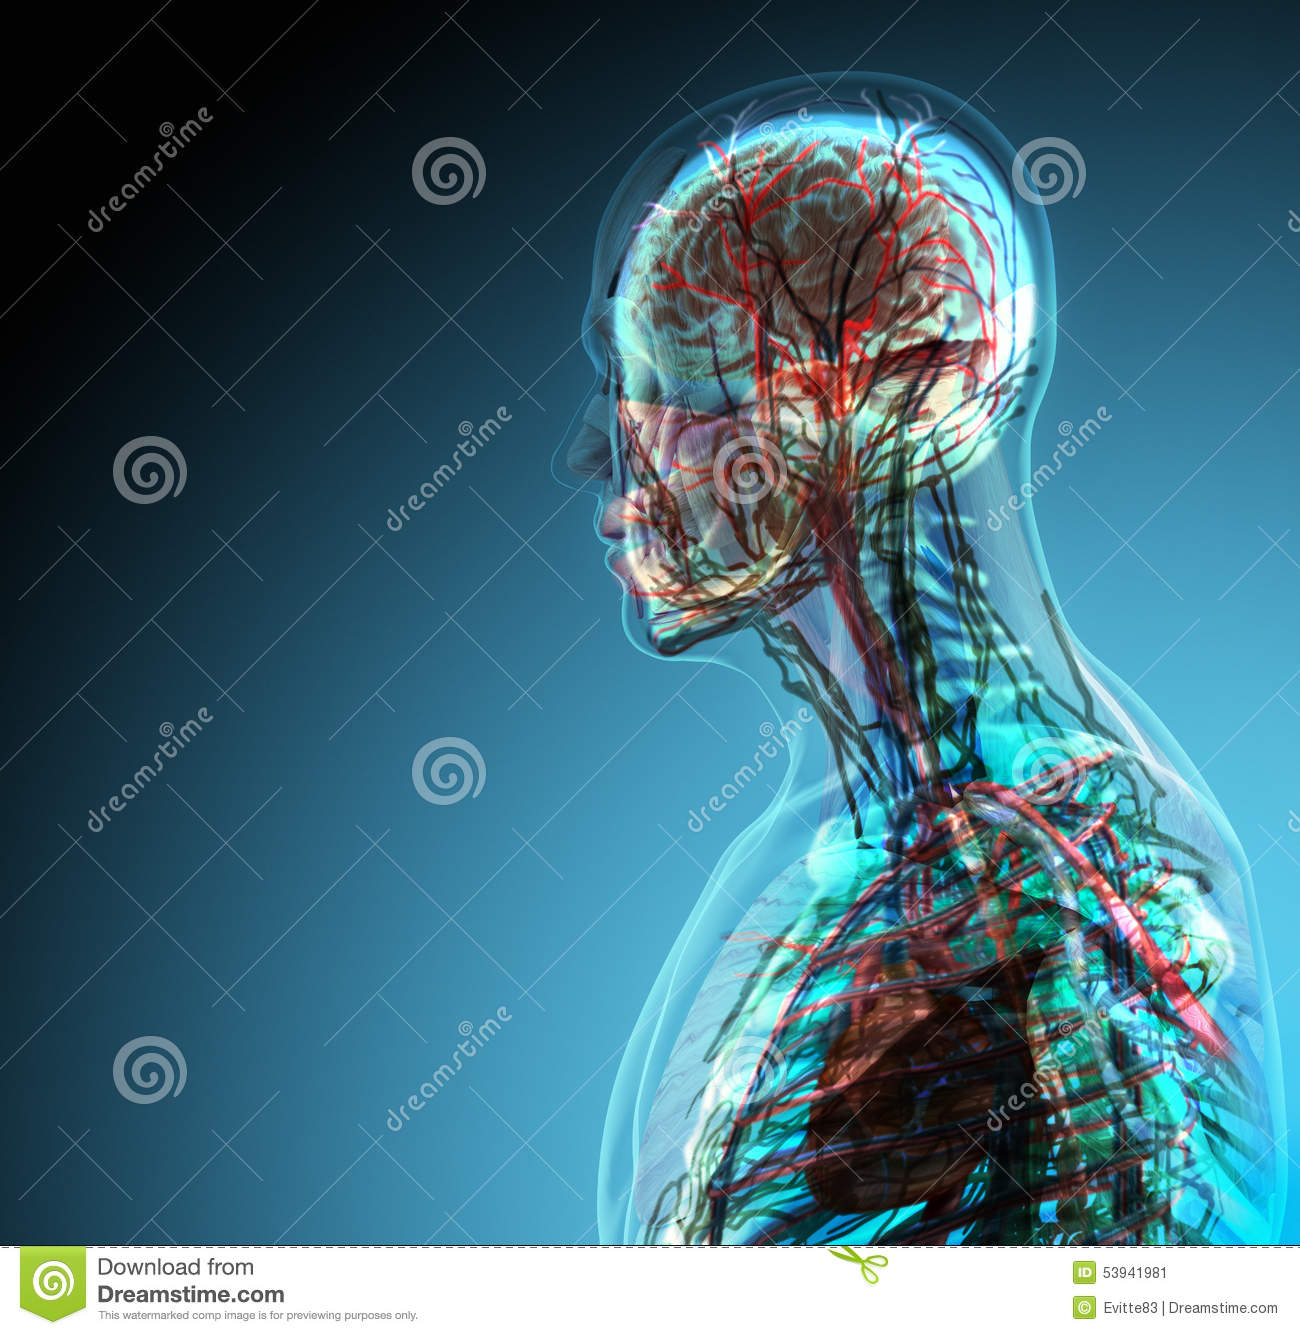 The human body (organs) by X-rays on blue background